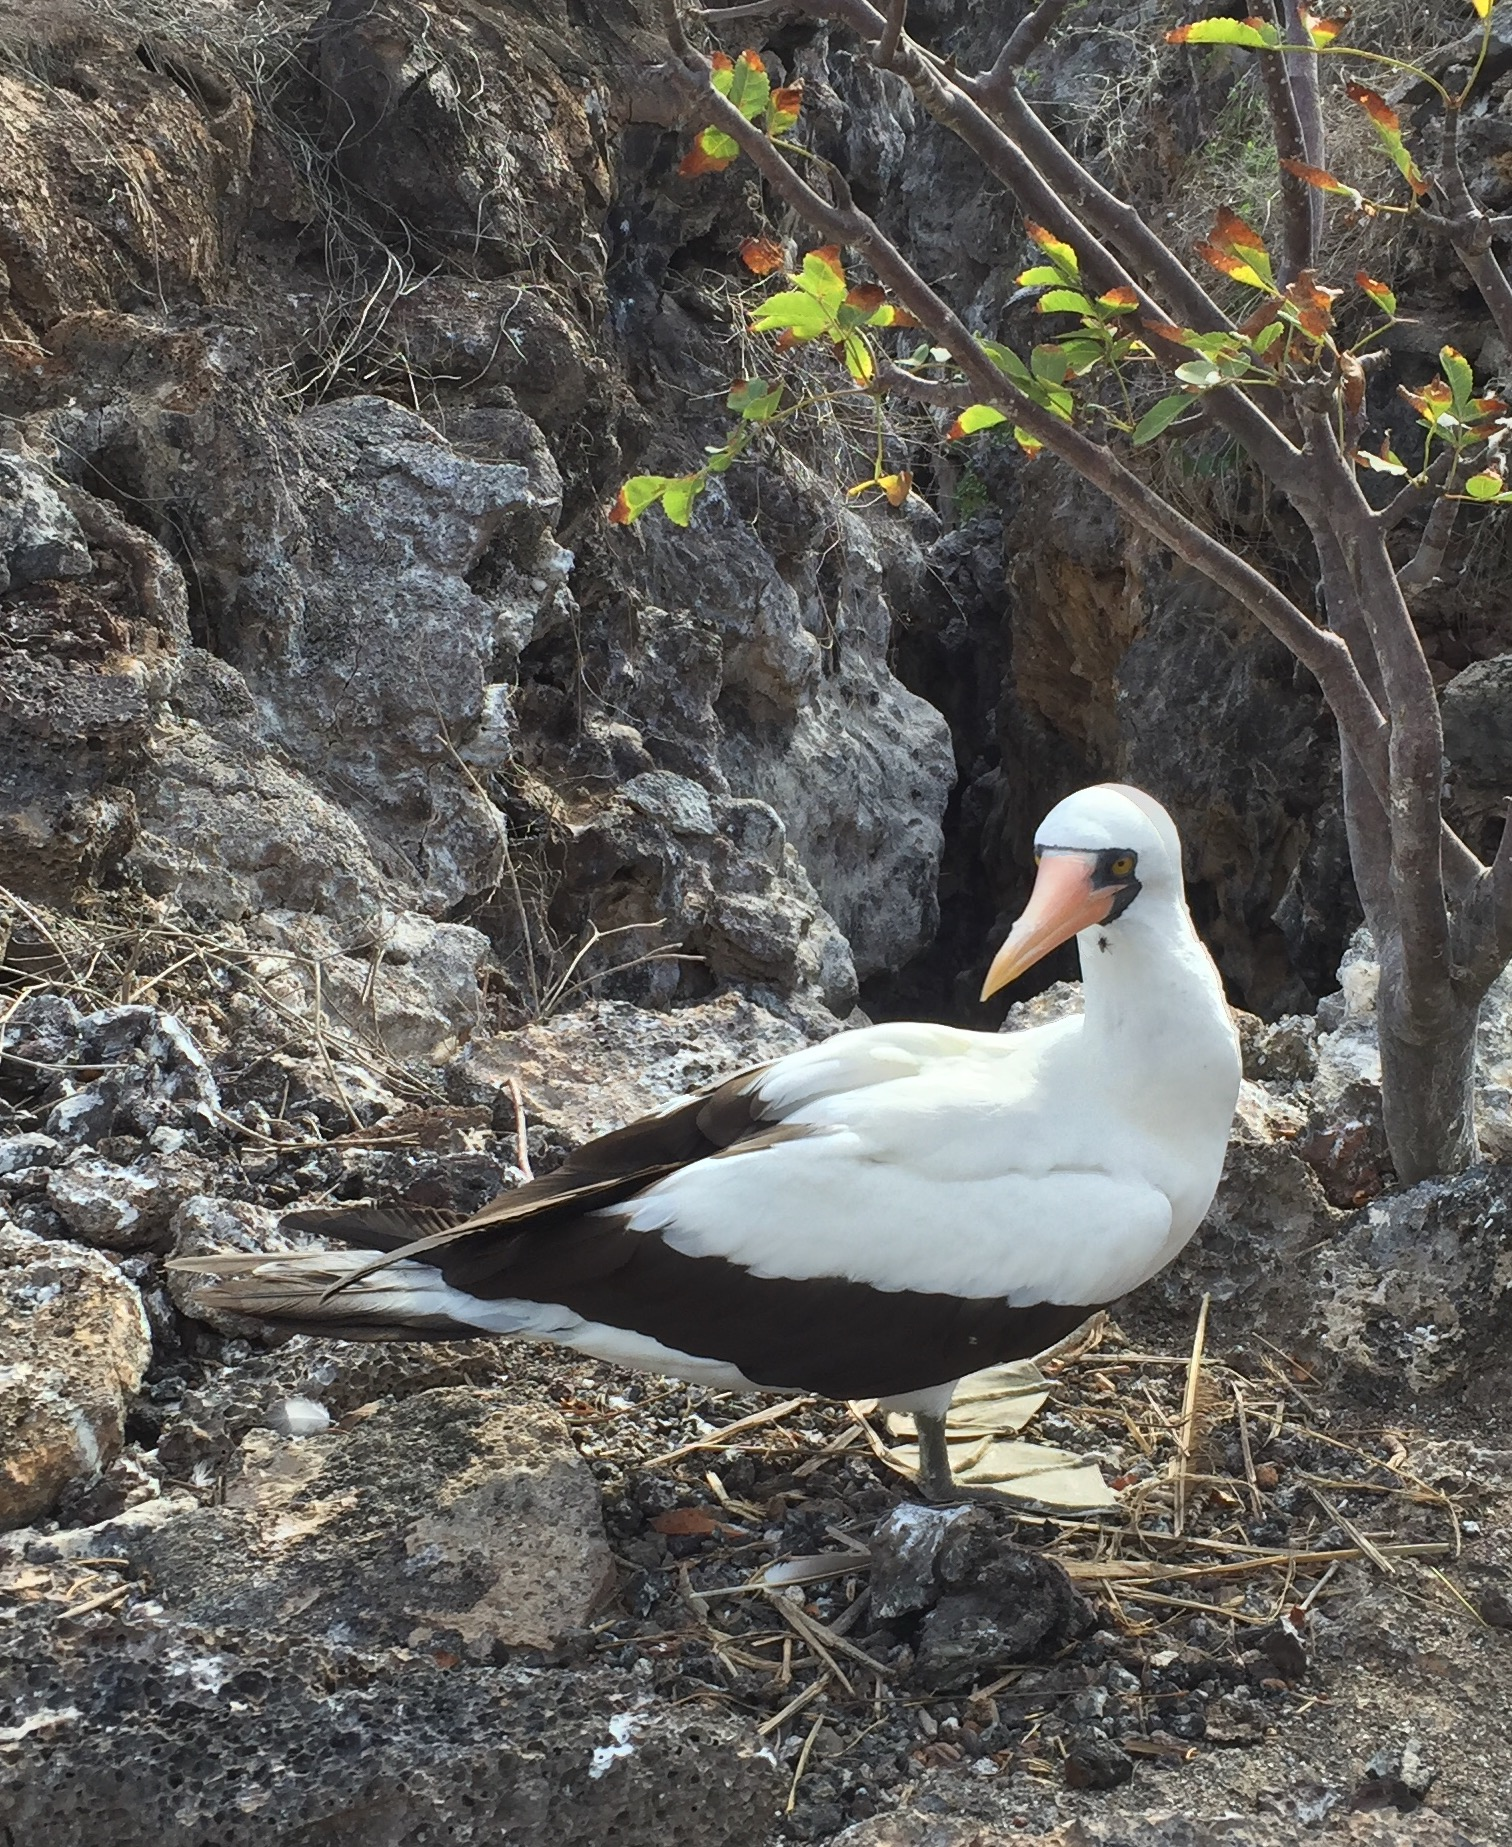 The Nazca boobie, pictured above, allowed people to come very close . . . they, like most birds in the Galapagos, seem to have little fear of humans.